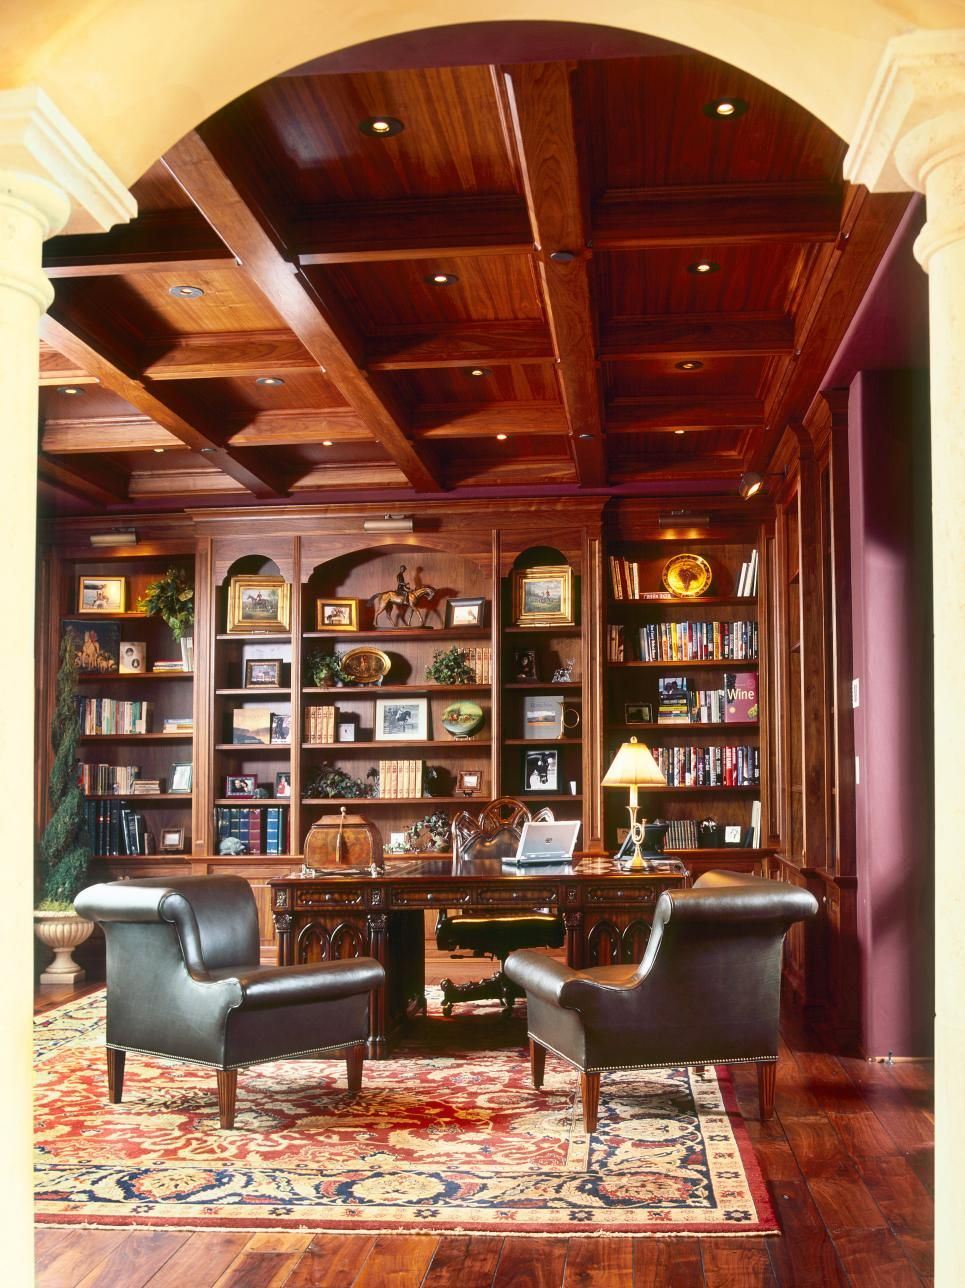 Home Library Decorating Ideas: The High Grid Ceiling And Arched Entryway Bring